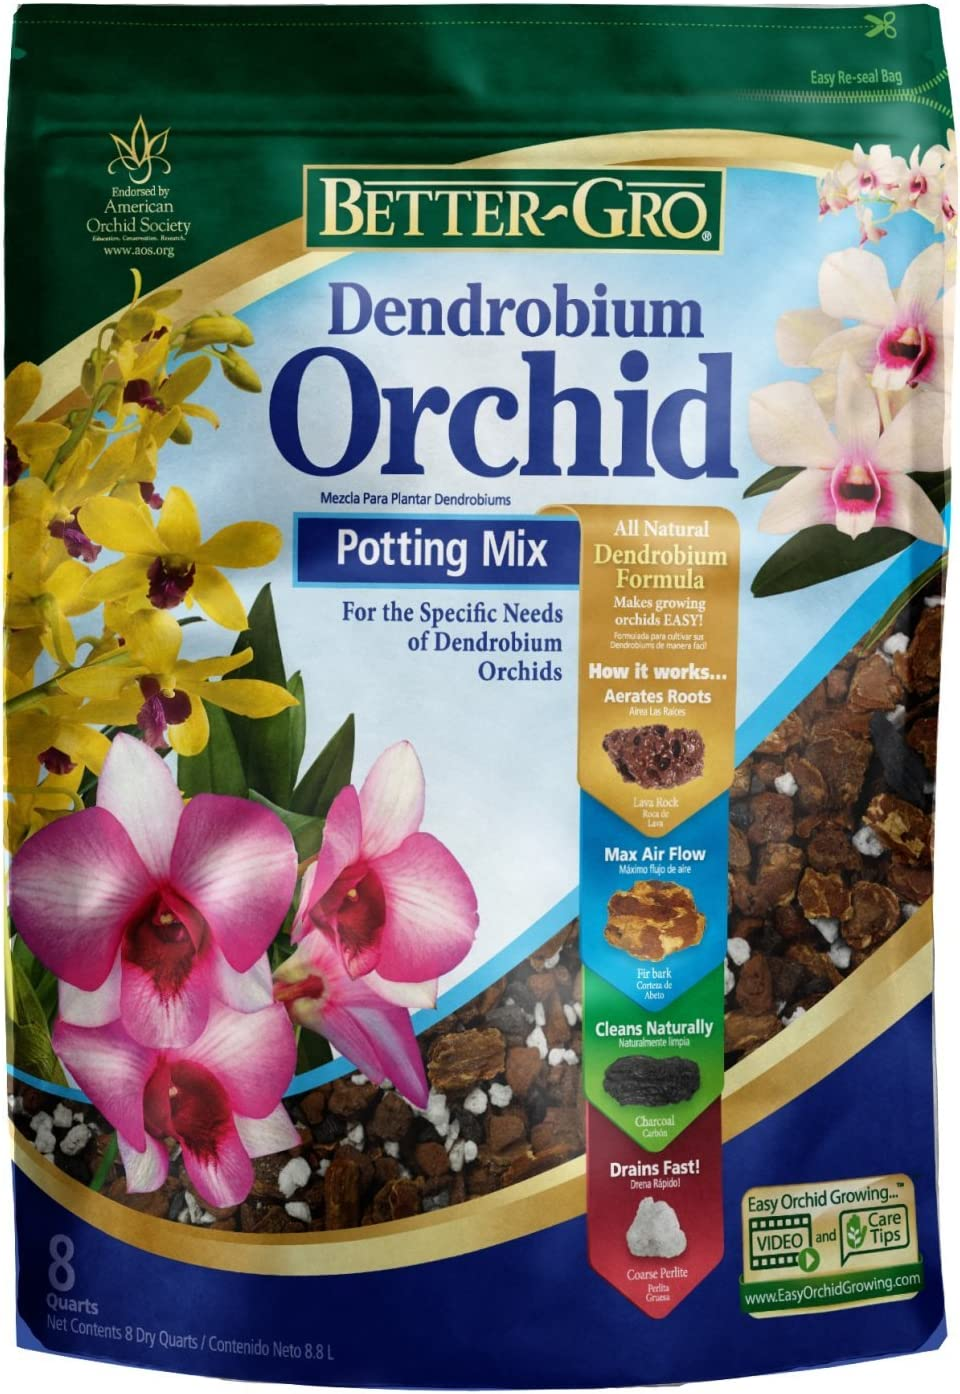 Selling Better-Gro Dendrobium Orchid Potting Quarts Finally resale start 8 Mix